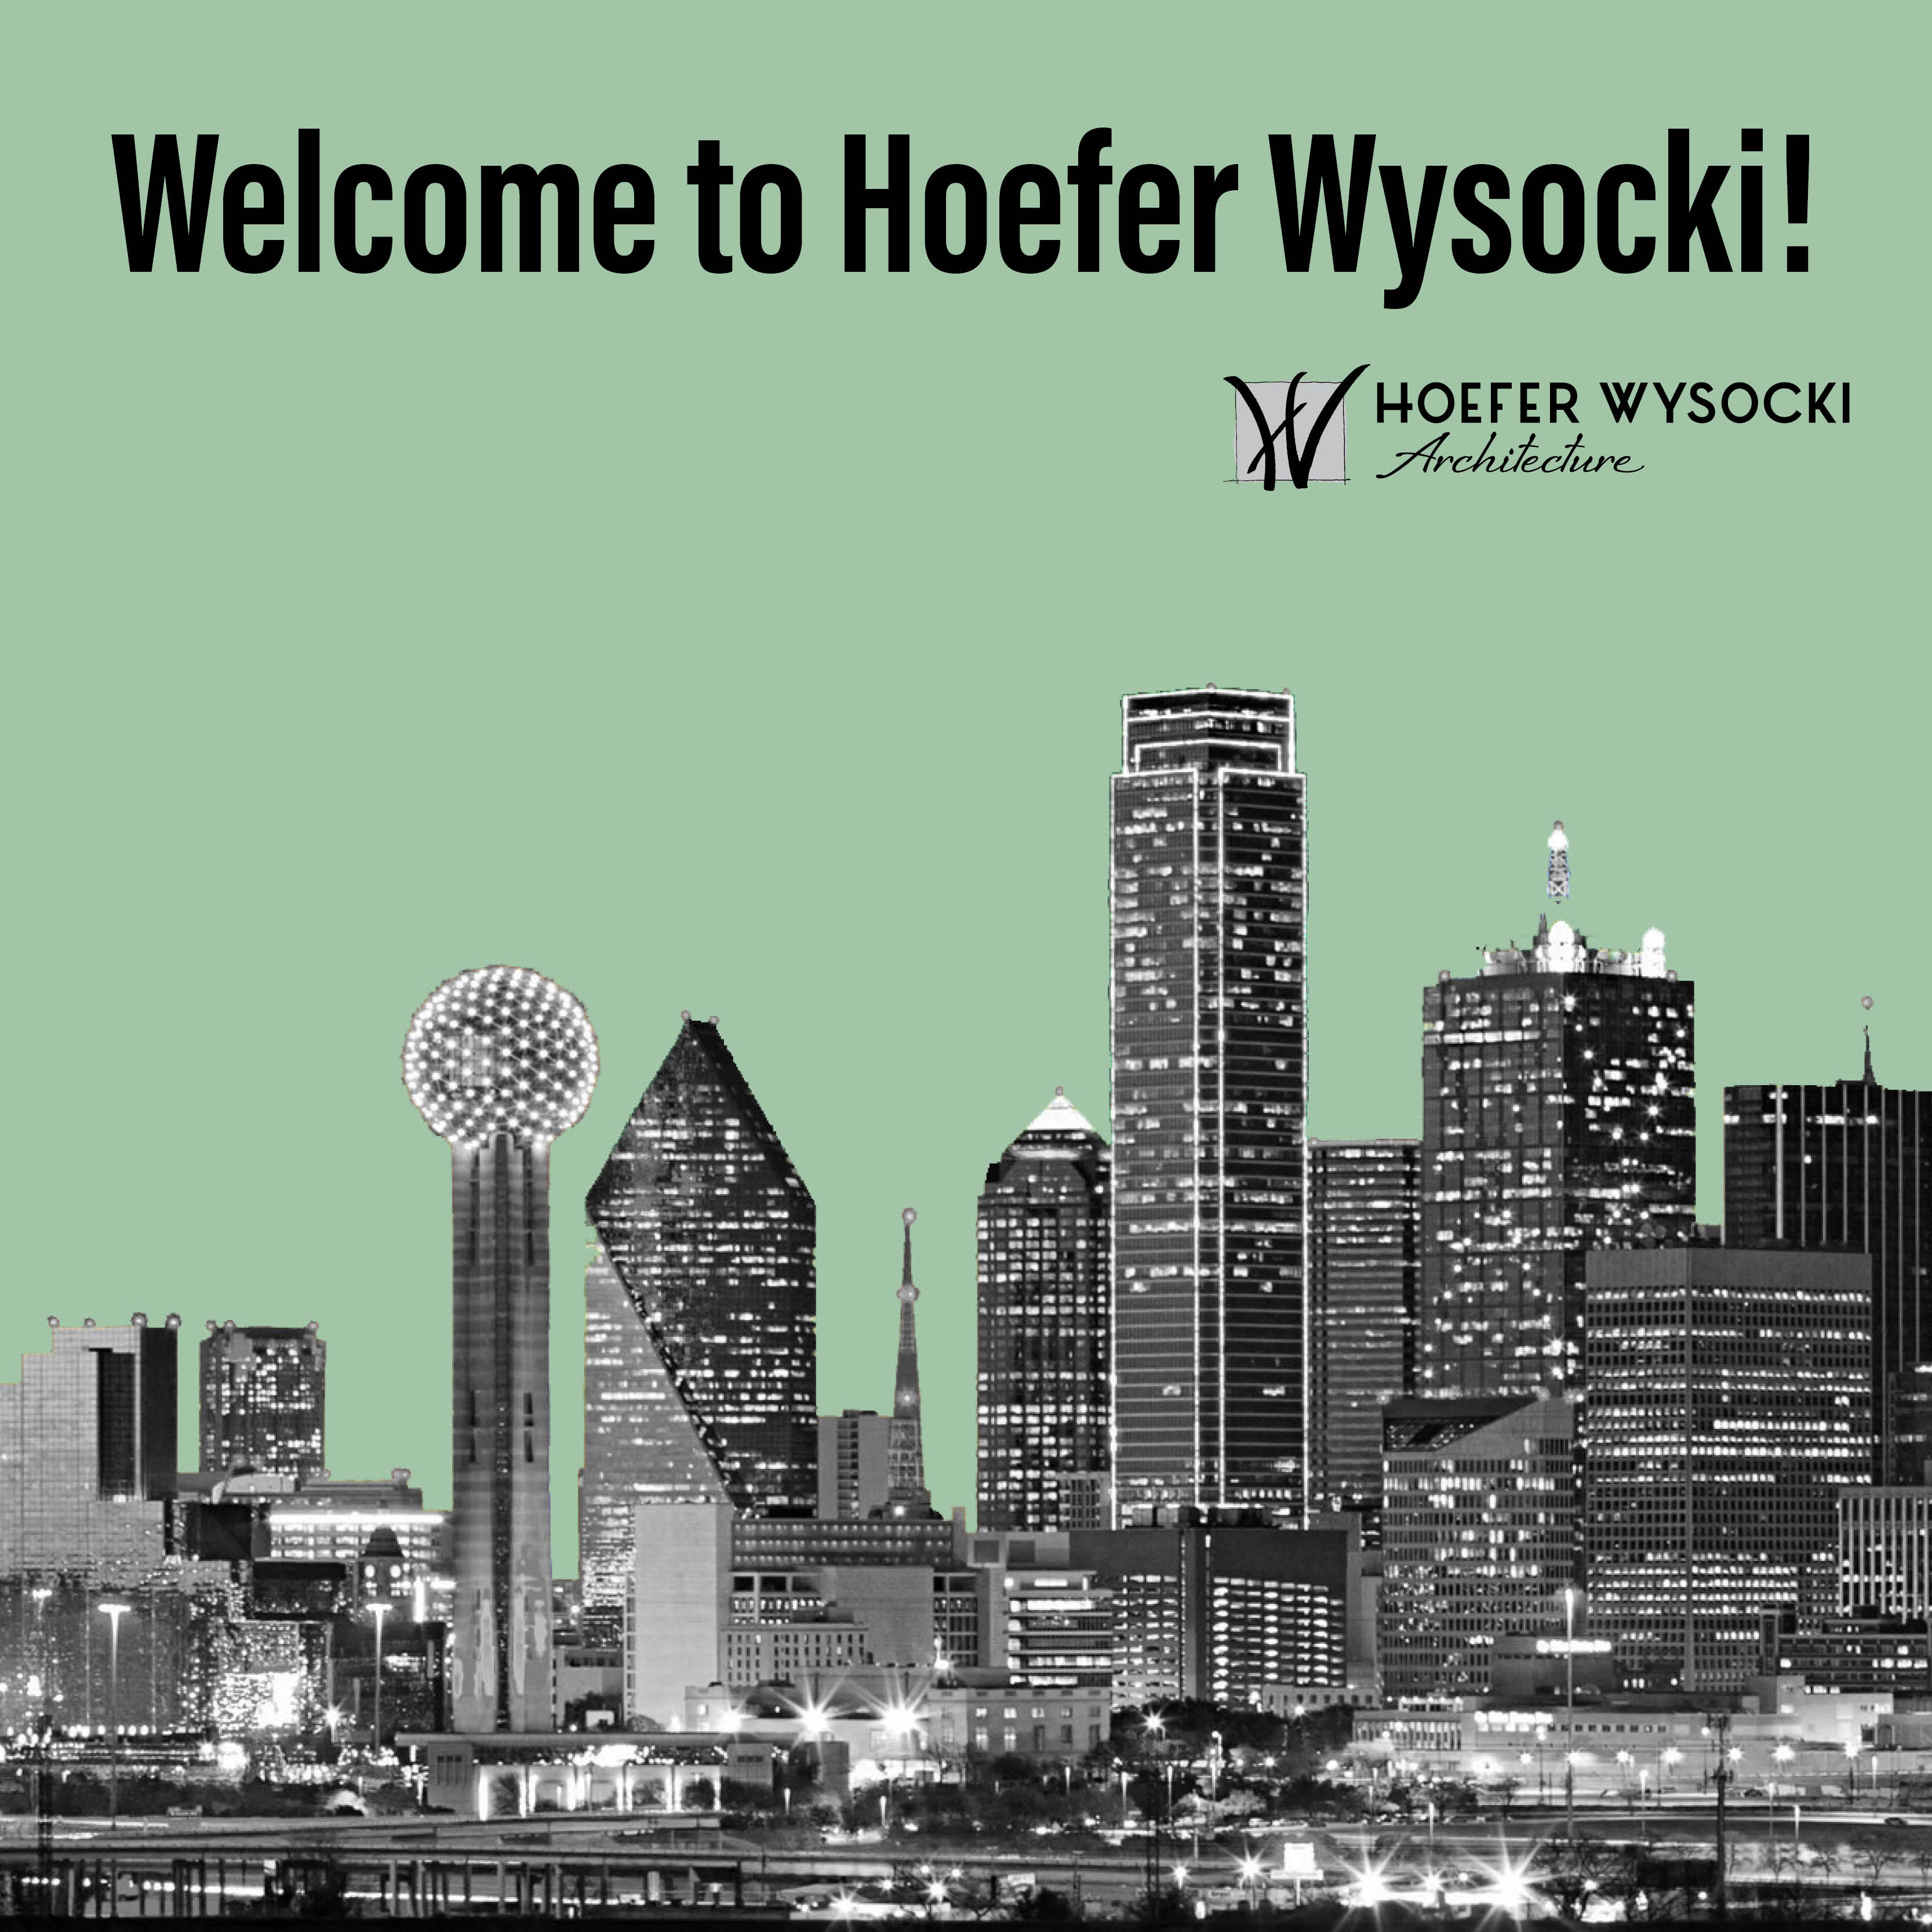 Hoefer Wysocki Architecture Continues to Grow!